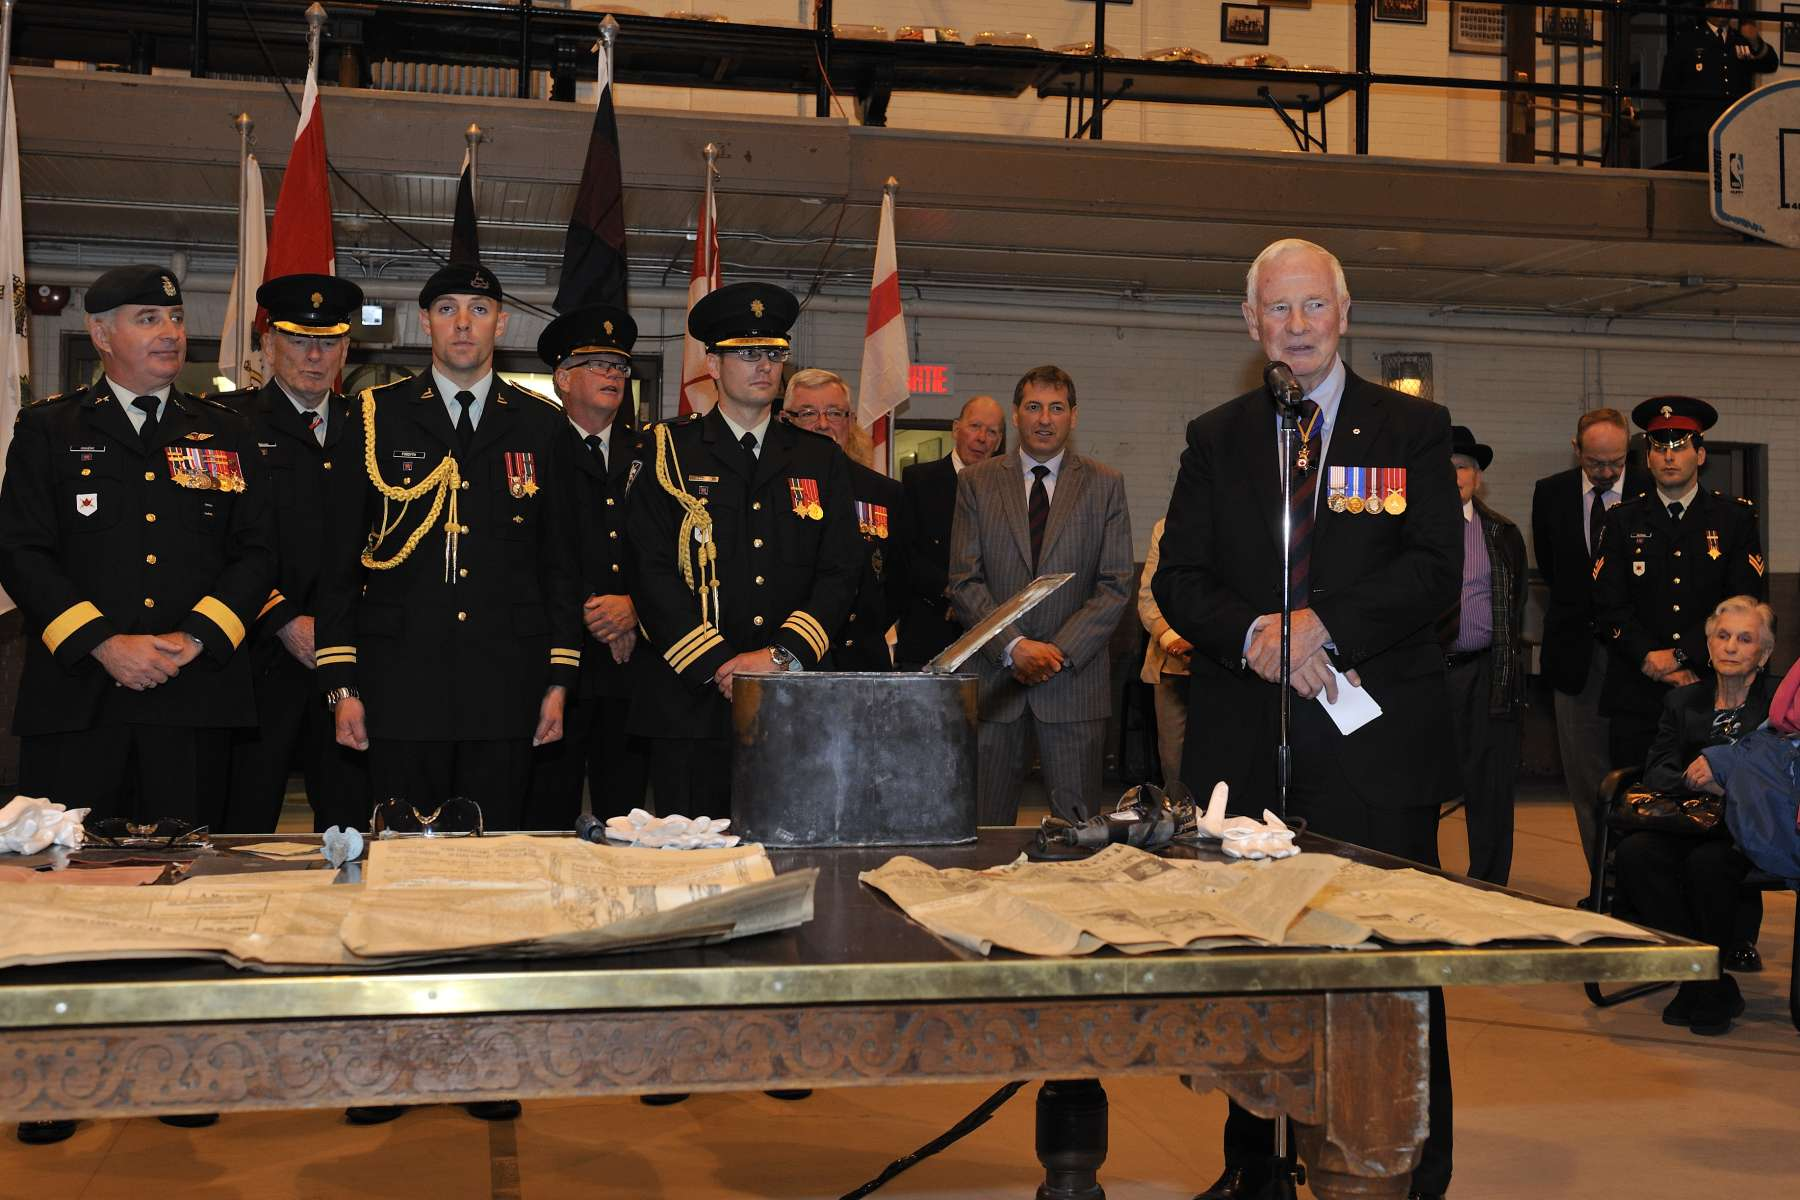 As colonel of the Regiment, the Governor General participated in the opening of a 100-year-old time capsule discovered during the restoration of the building in December 2011.